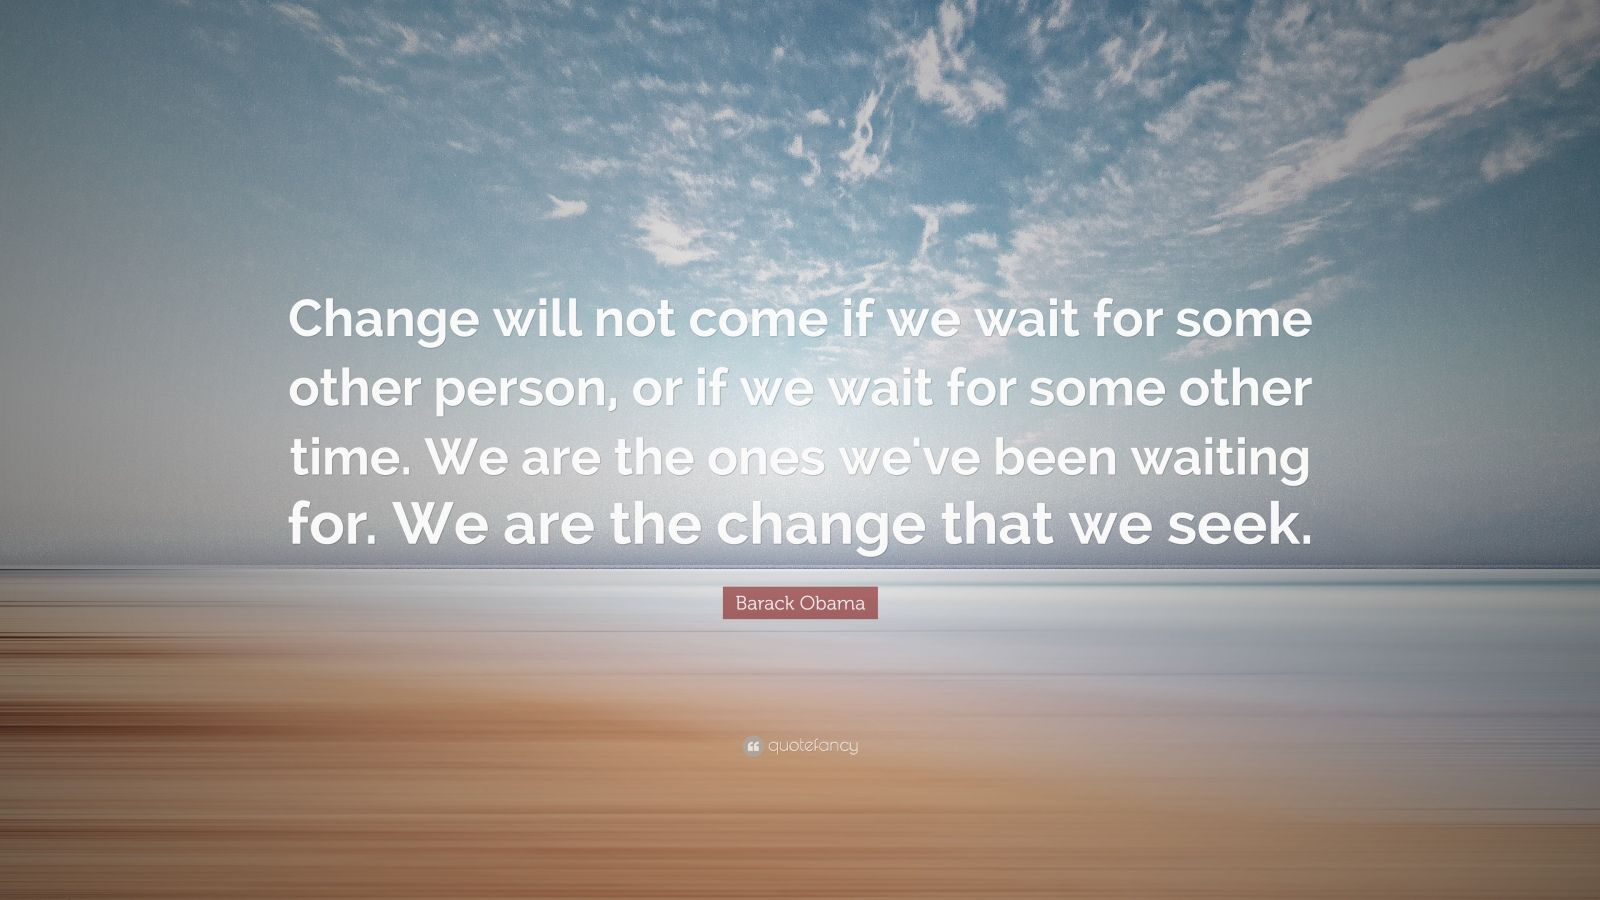 Aristotle Quotes Wallpaper Barack Obama Quote Change Will Not Come If We Wait For